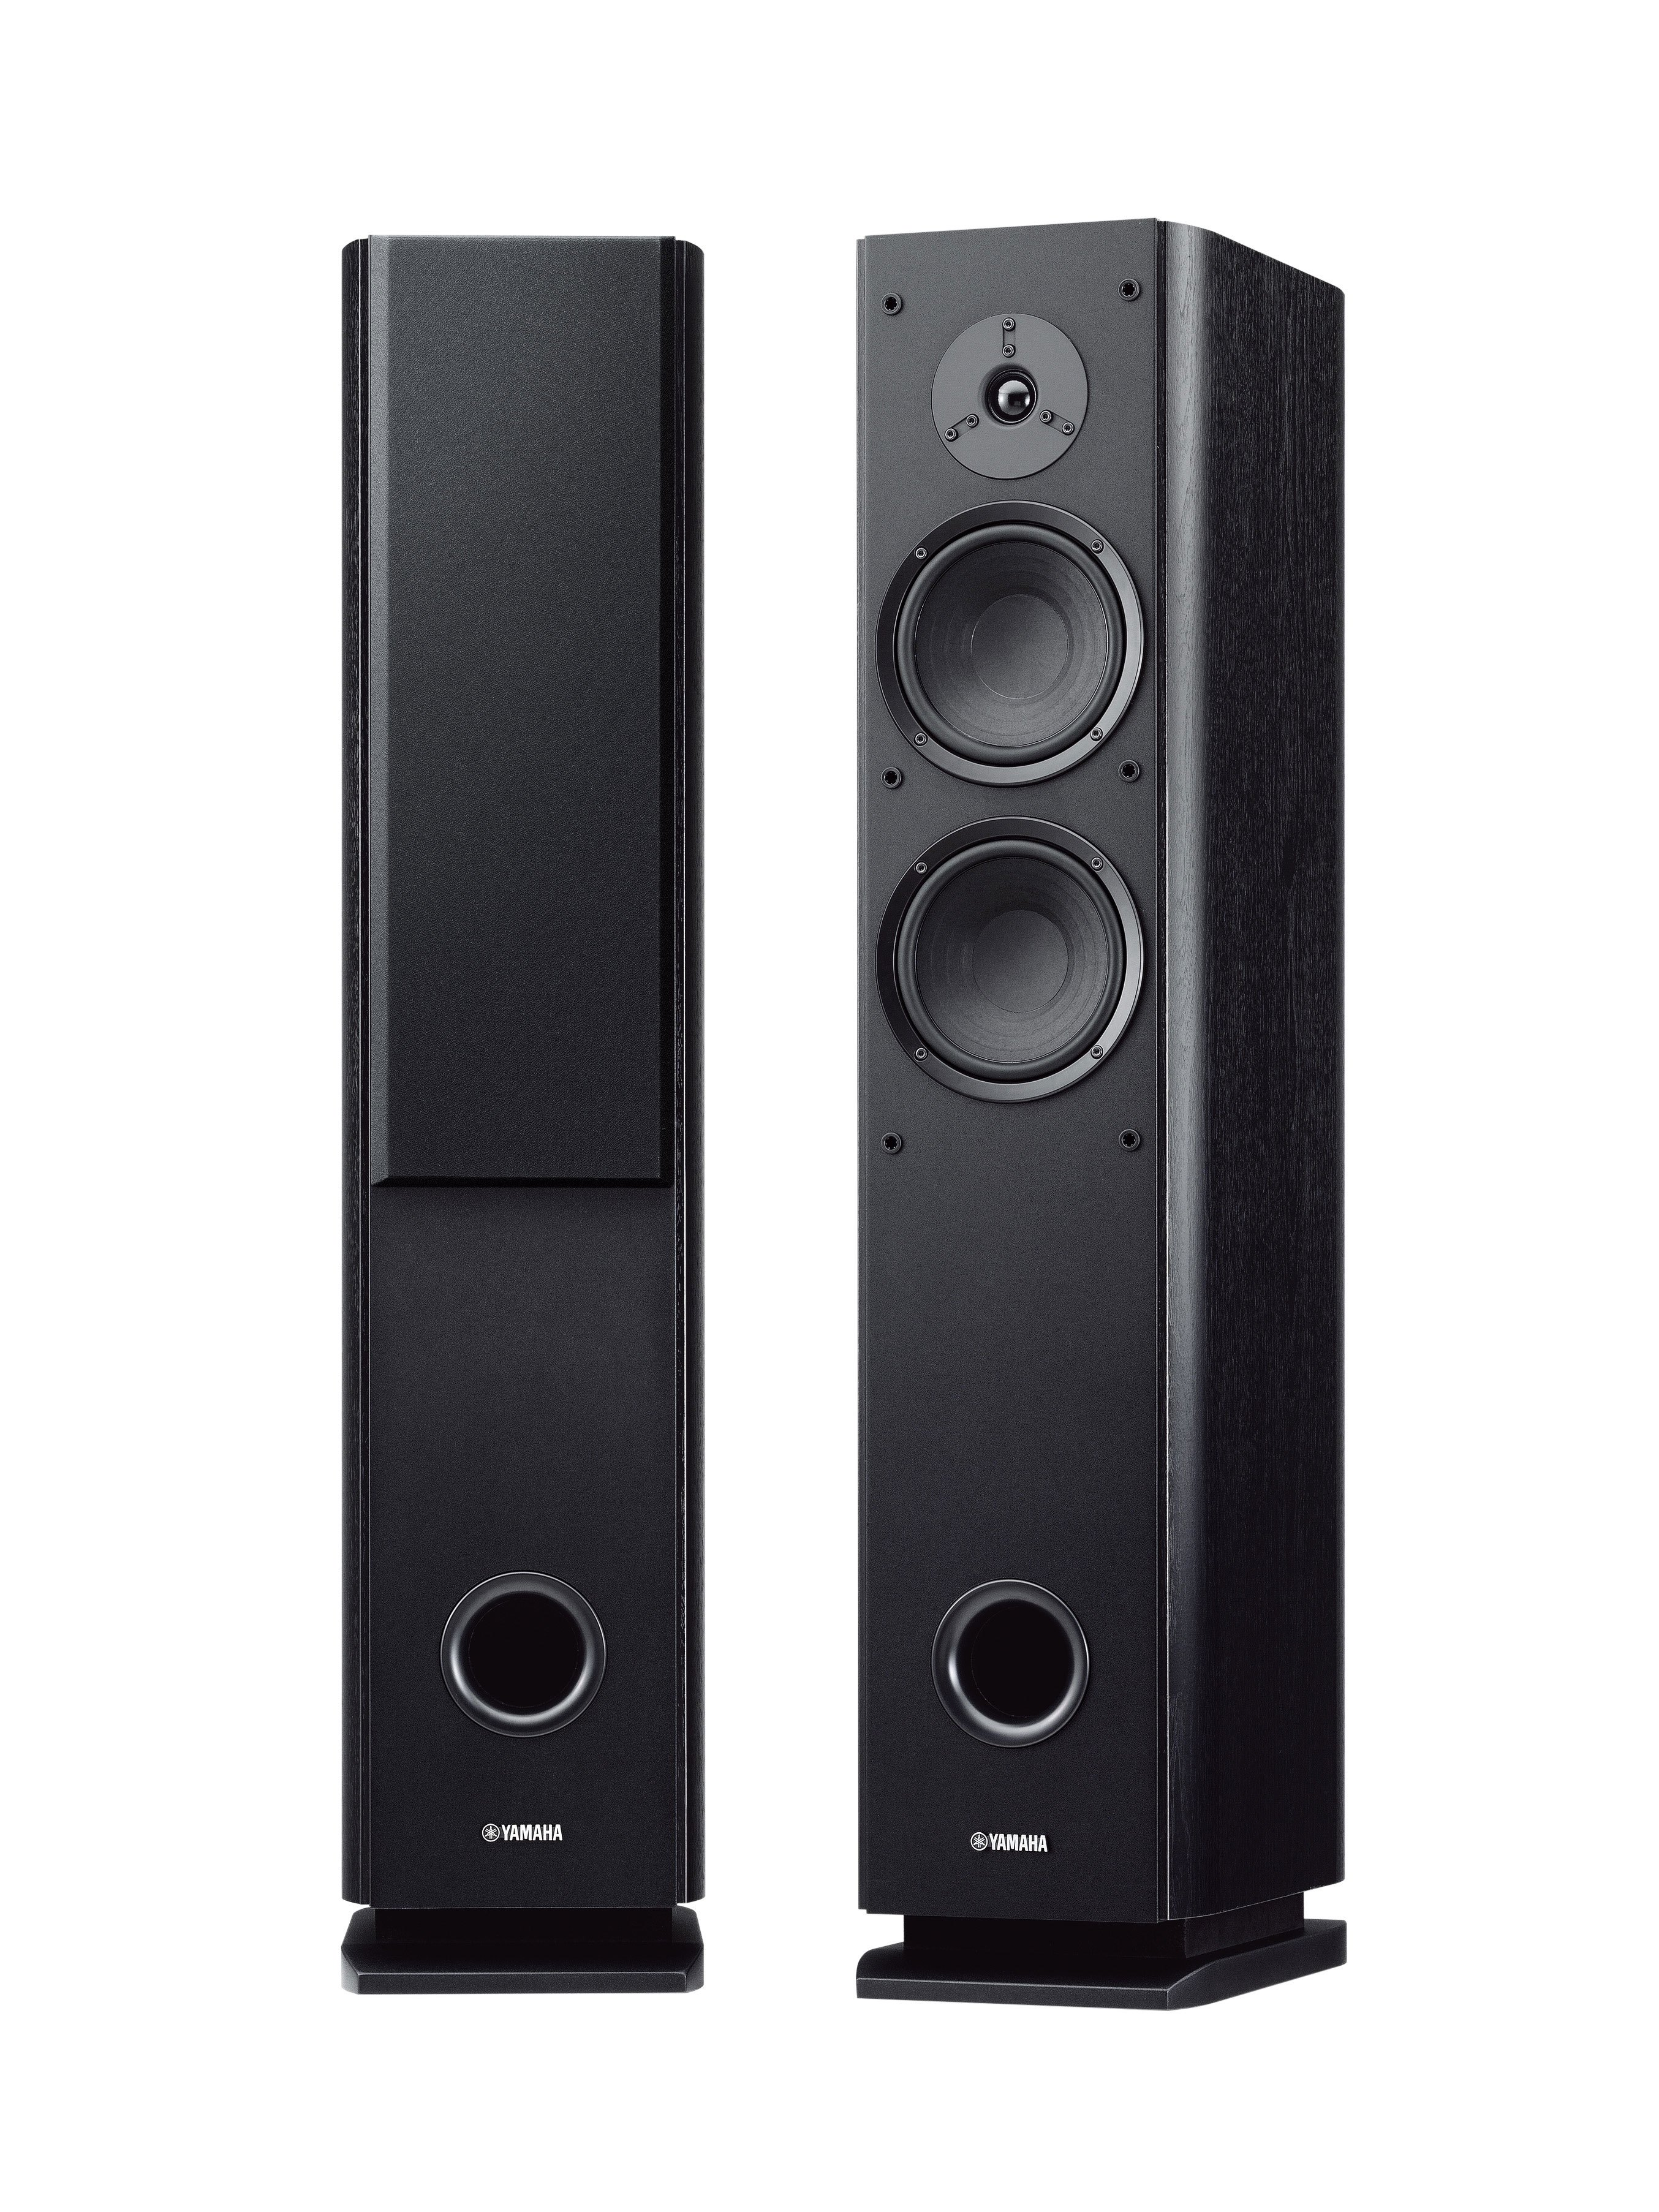 Speaker Systems Audio Visual Products Yamaha India 3 Way Switch Ns F160 Floorstanding